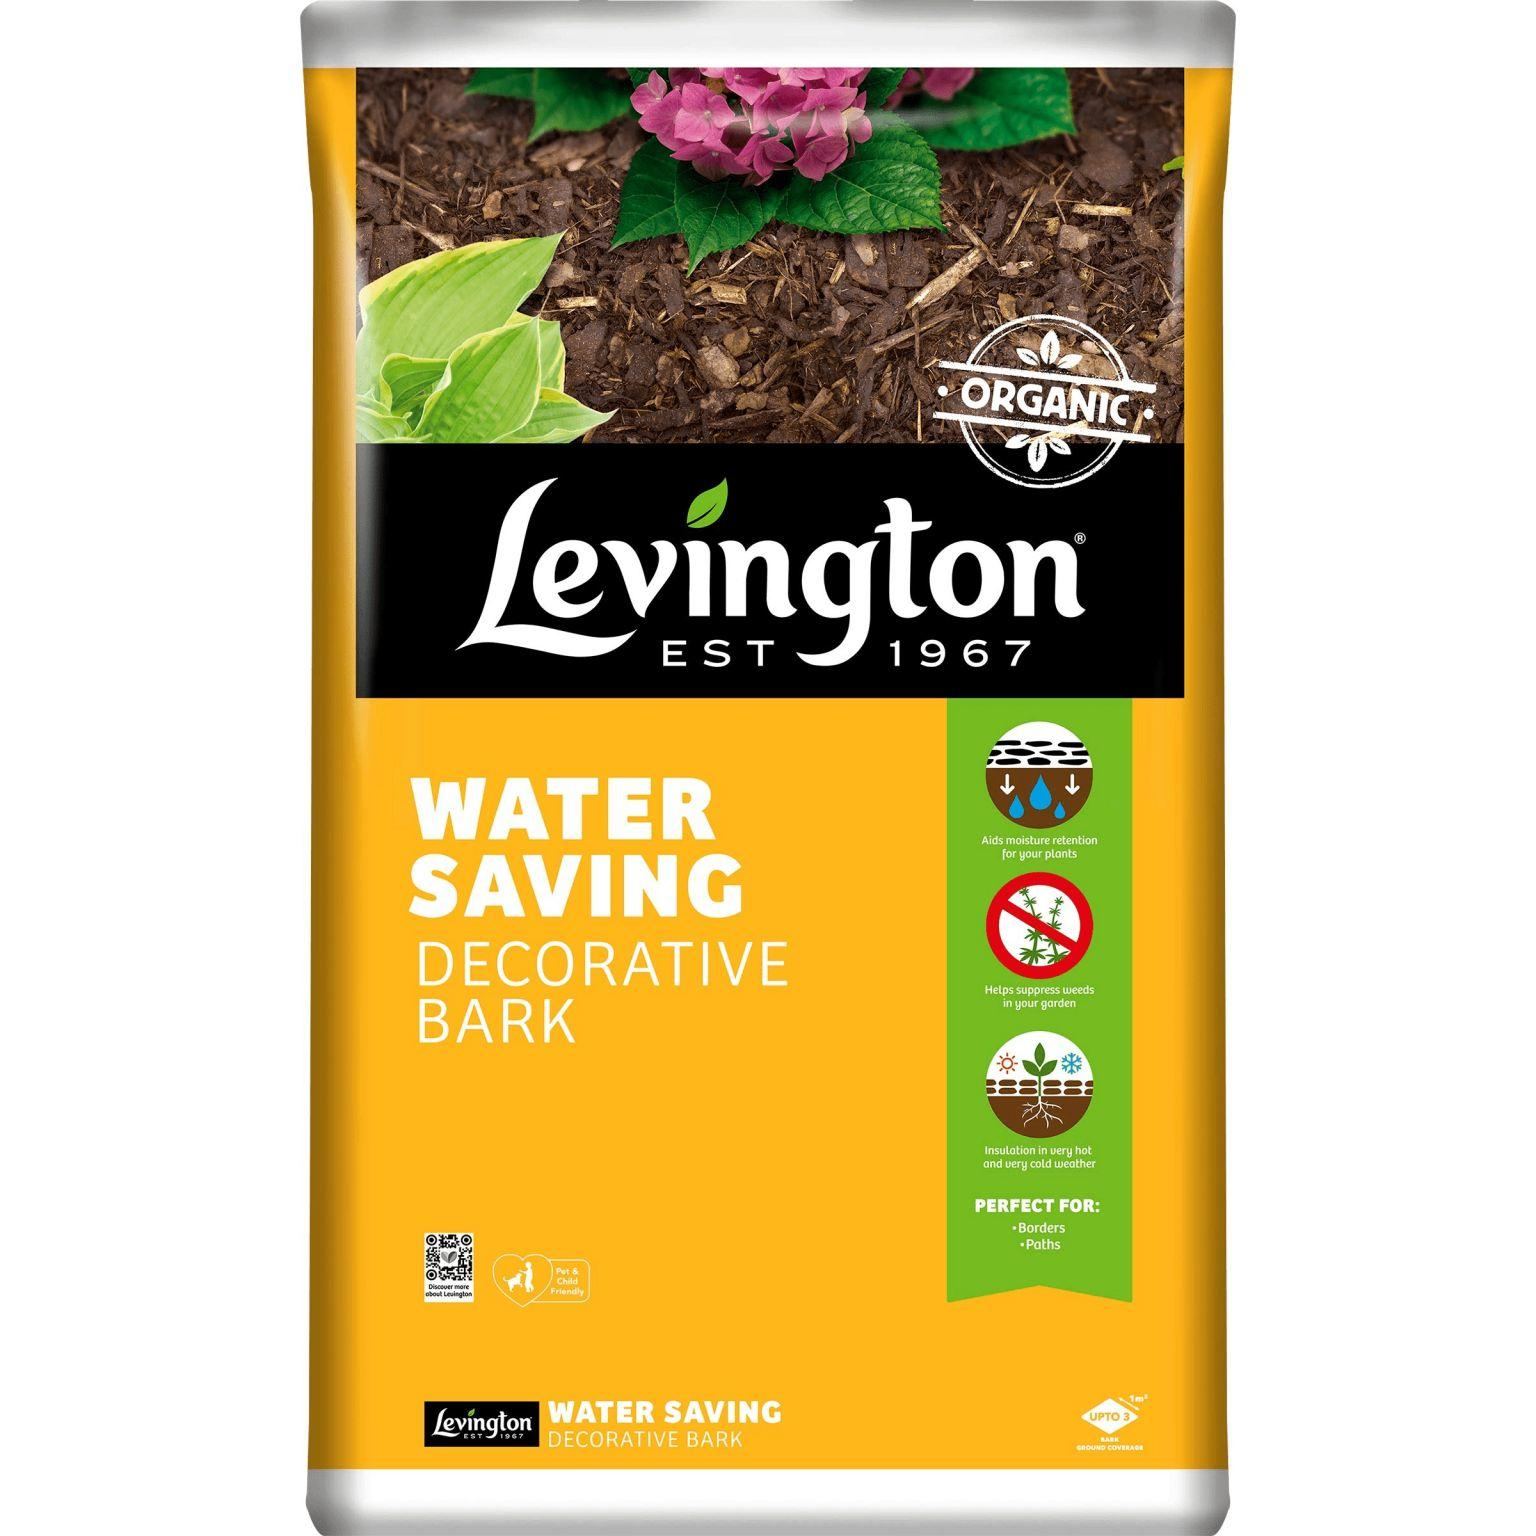 Levington water saving bark